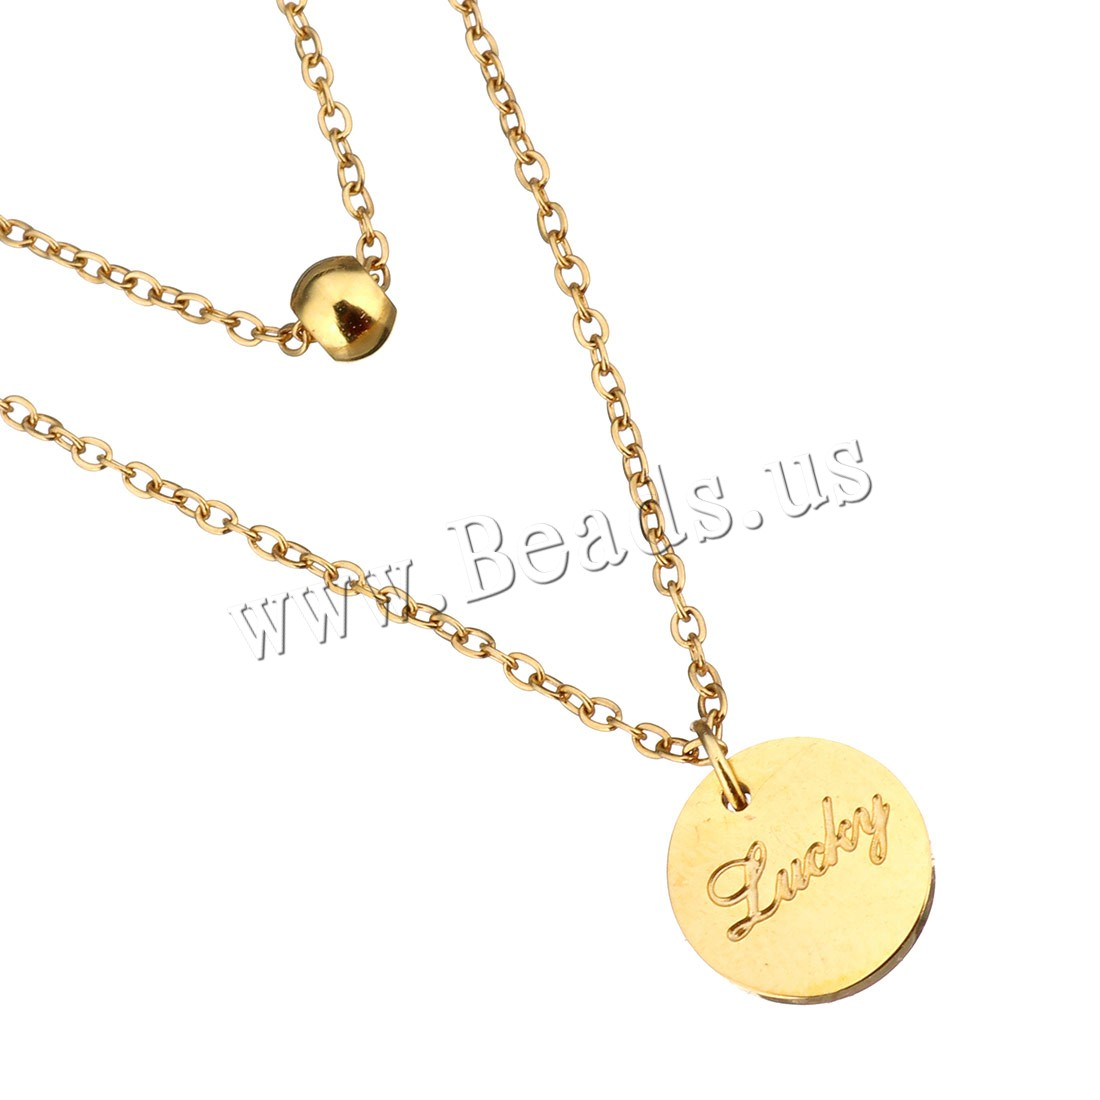 Buy Stainless Steel Jewelry Necklace 2Inch extender chain Flat Round word lucky gold color plated oval chain & woman & 2-strand 9mm 4mm 1mm Sold Per Approx 14 Inch Strand